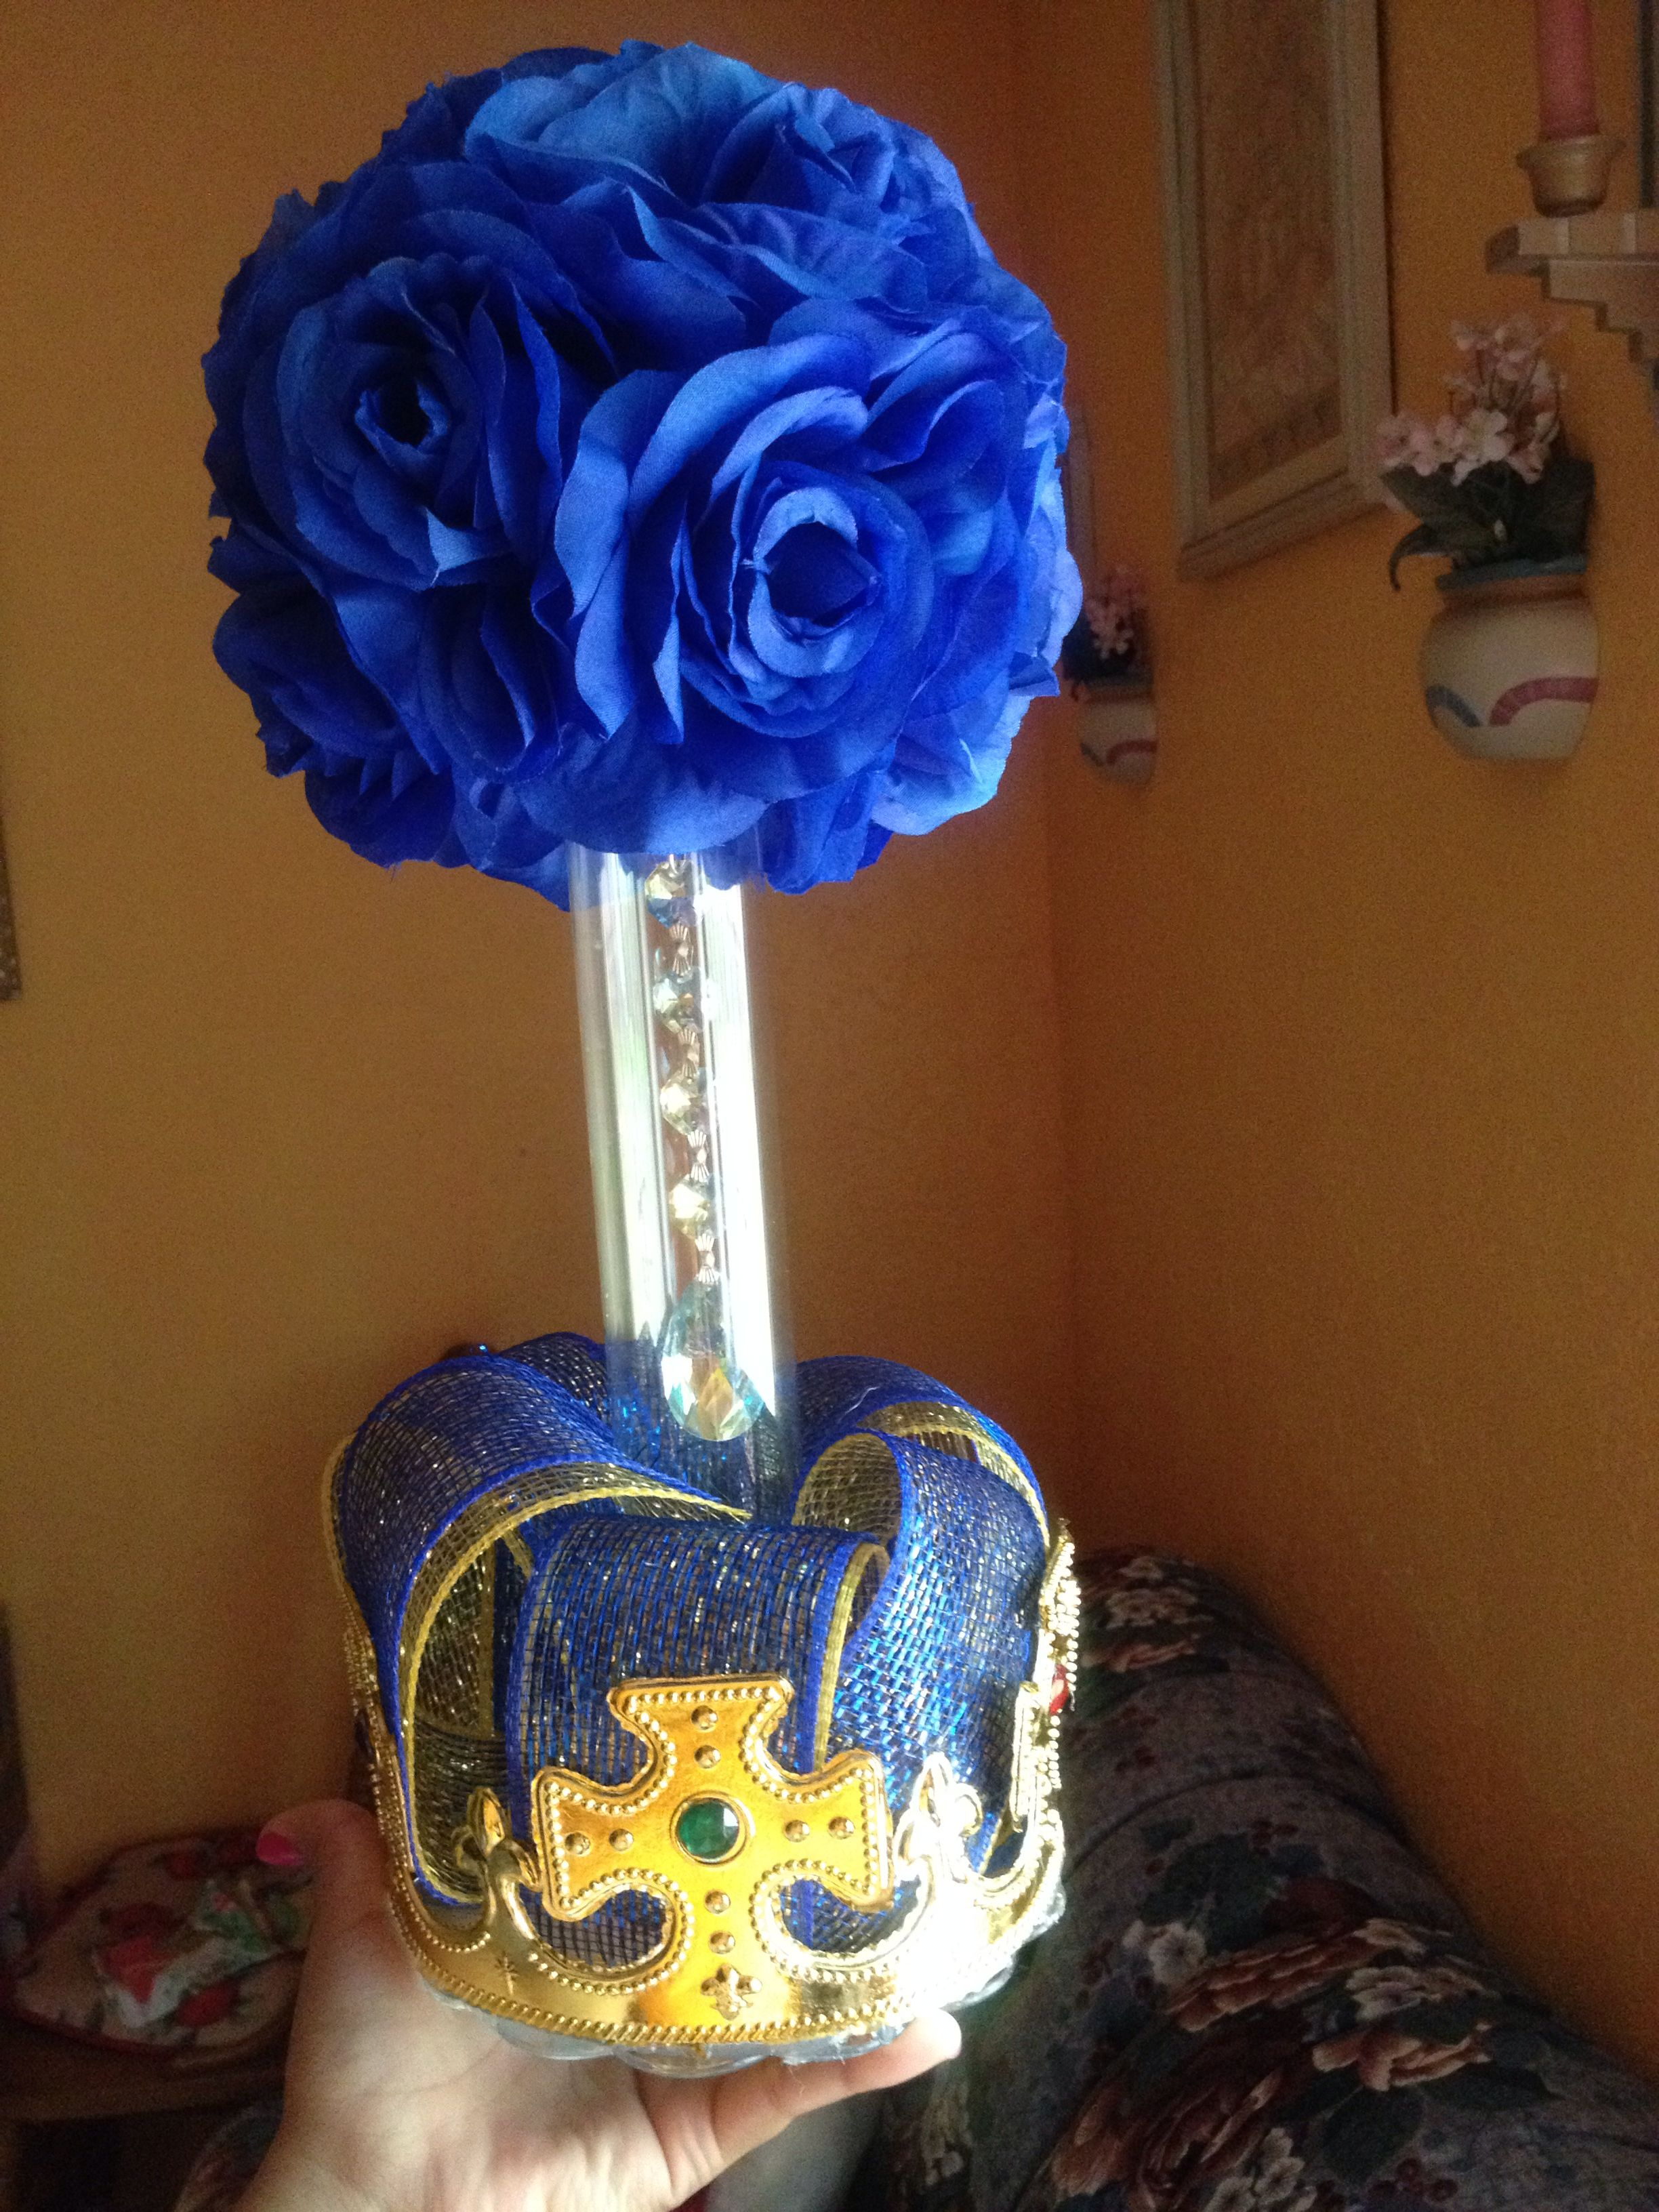 Royal Baby Shower Centerpieces Diy Total Cost $7 9 (Gold Floral